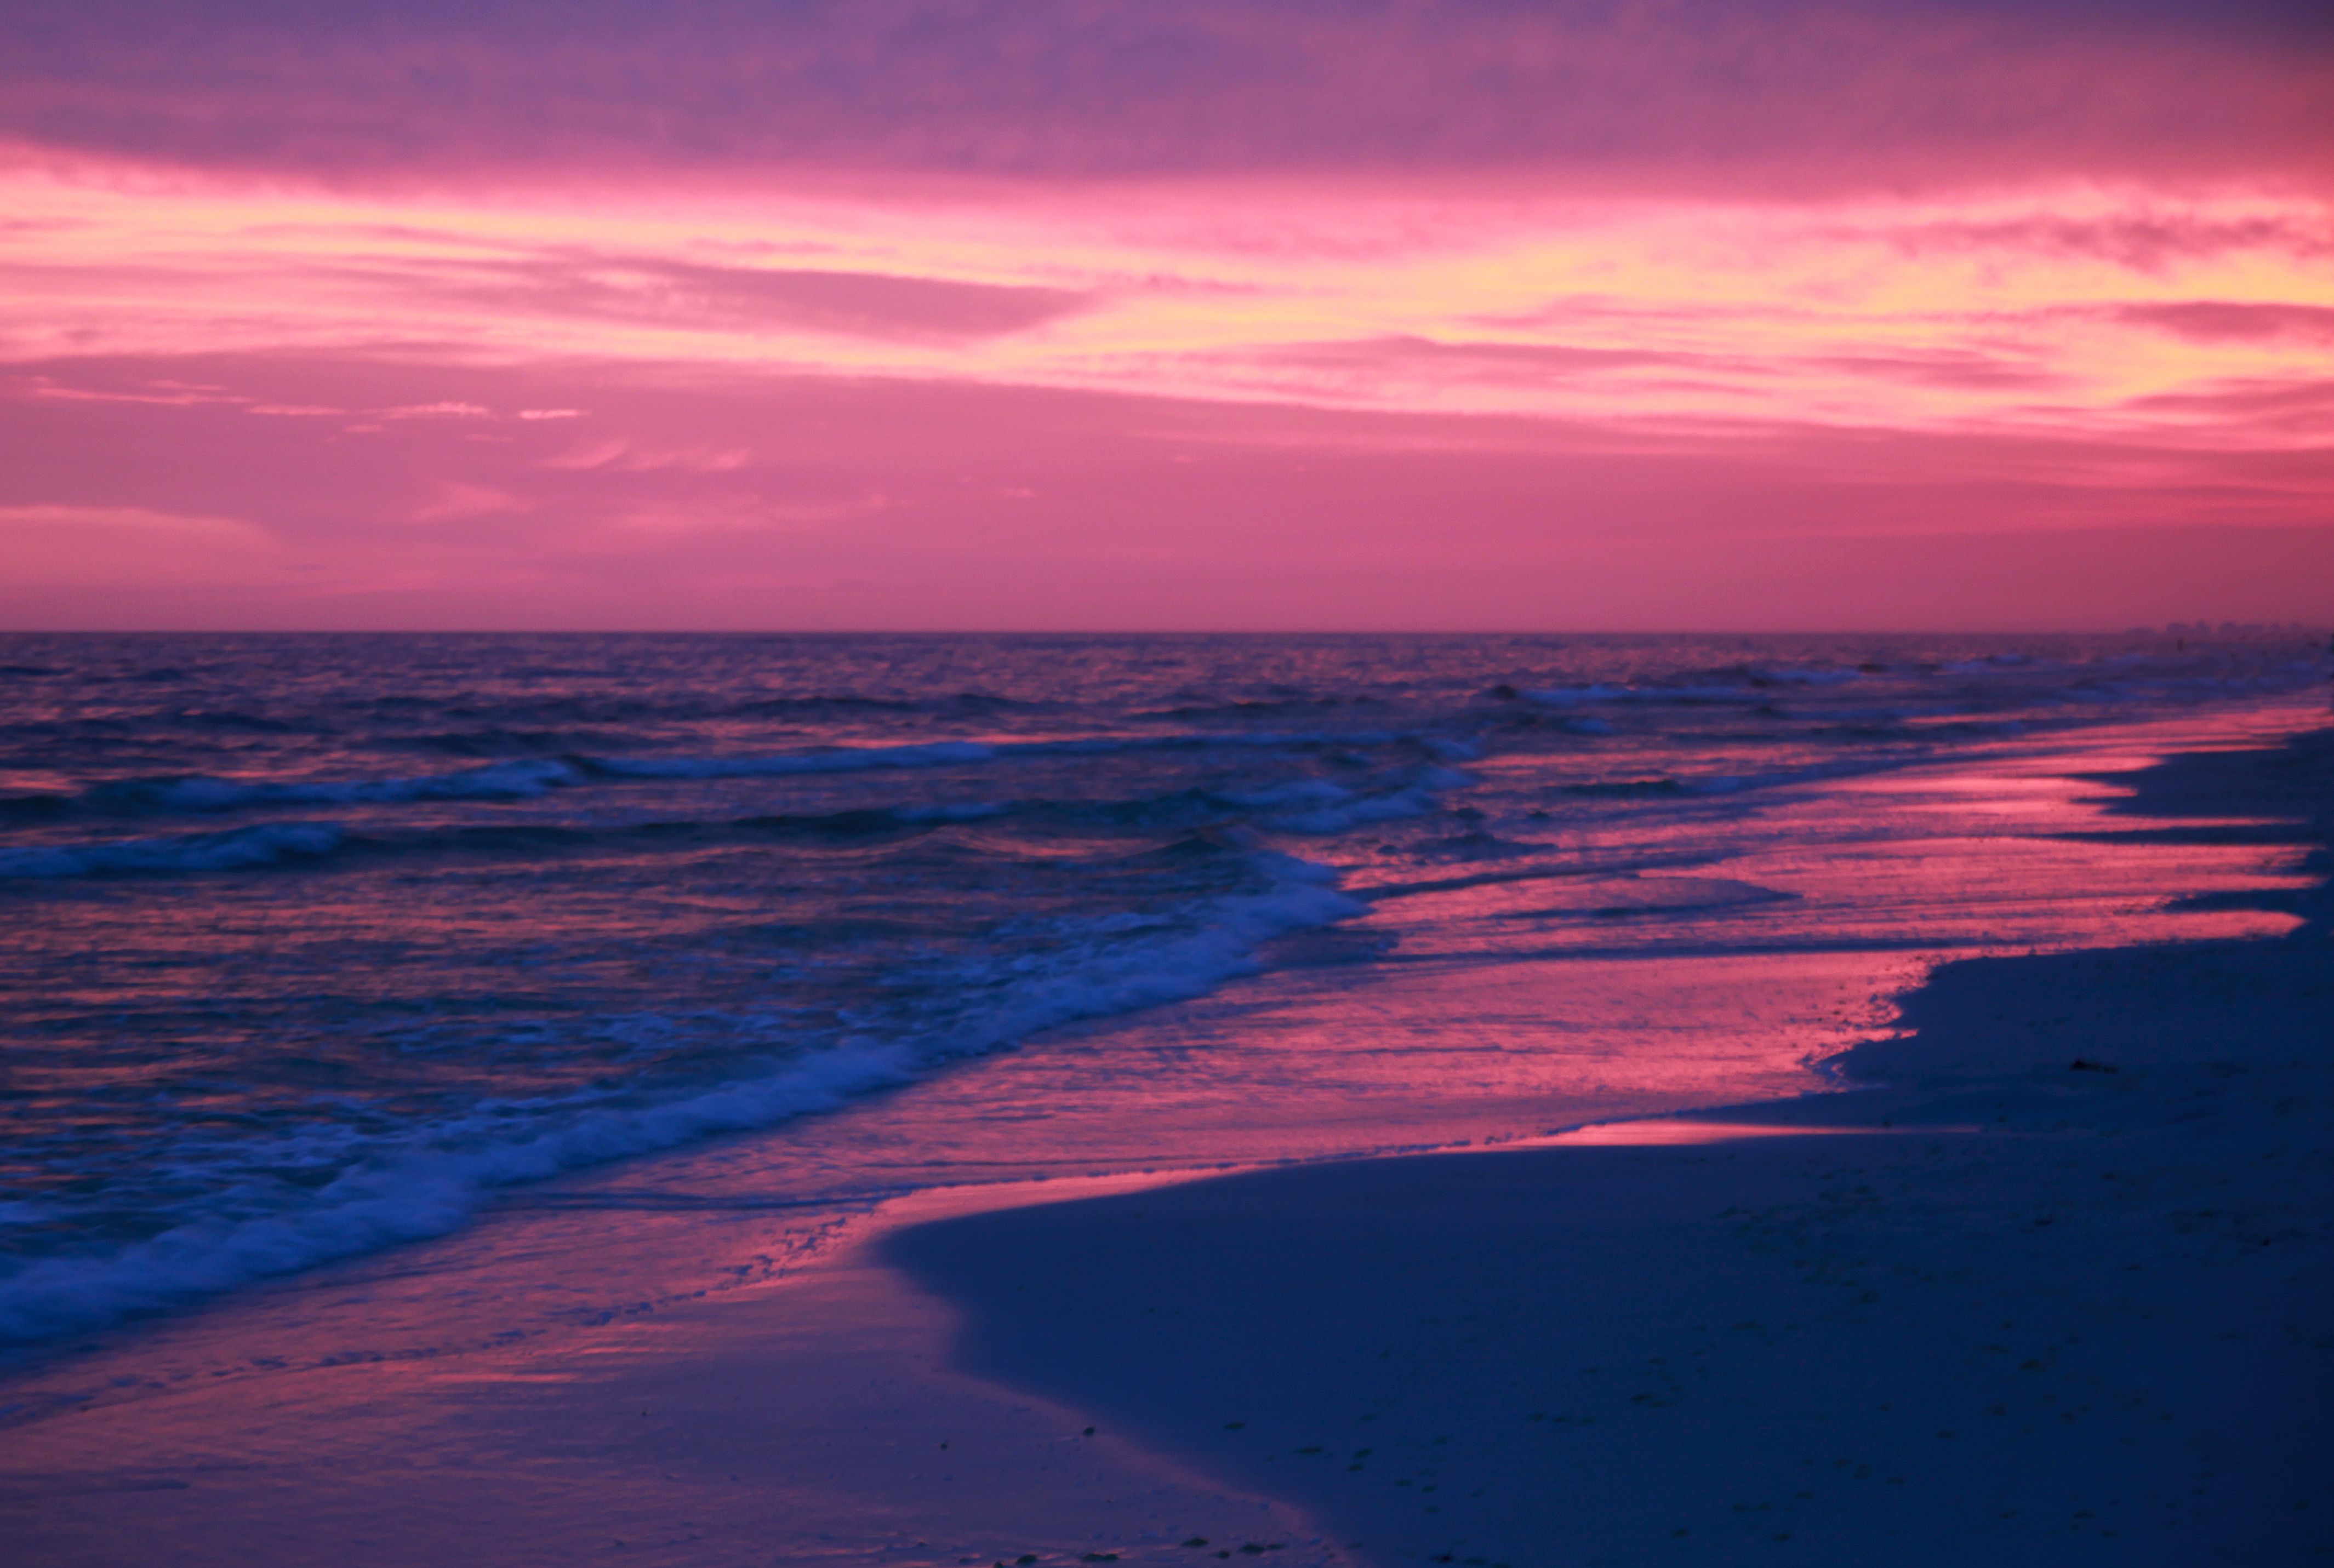 Beach Sunset Backgrounds Tumblr: Pink Beach Sunset Wallpaper